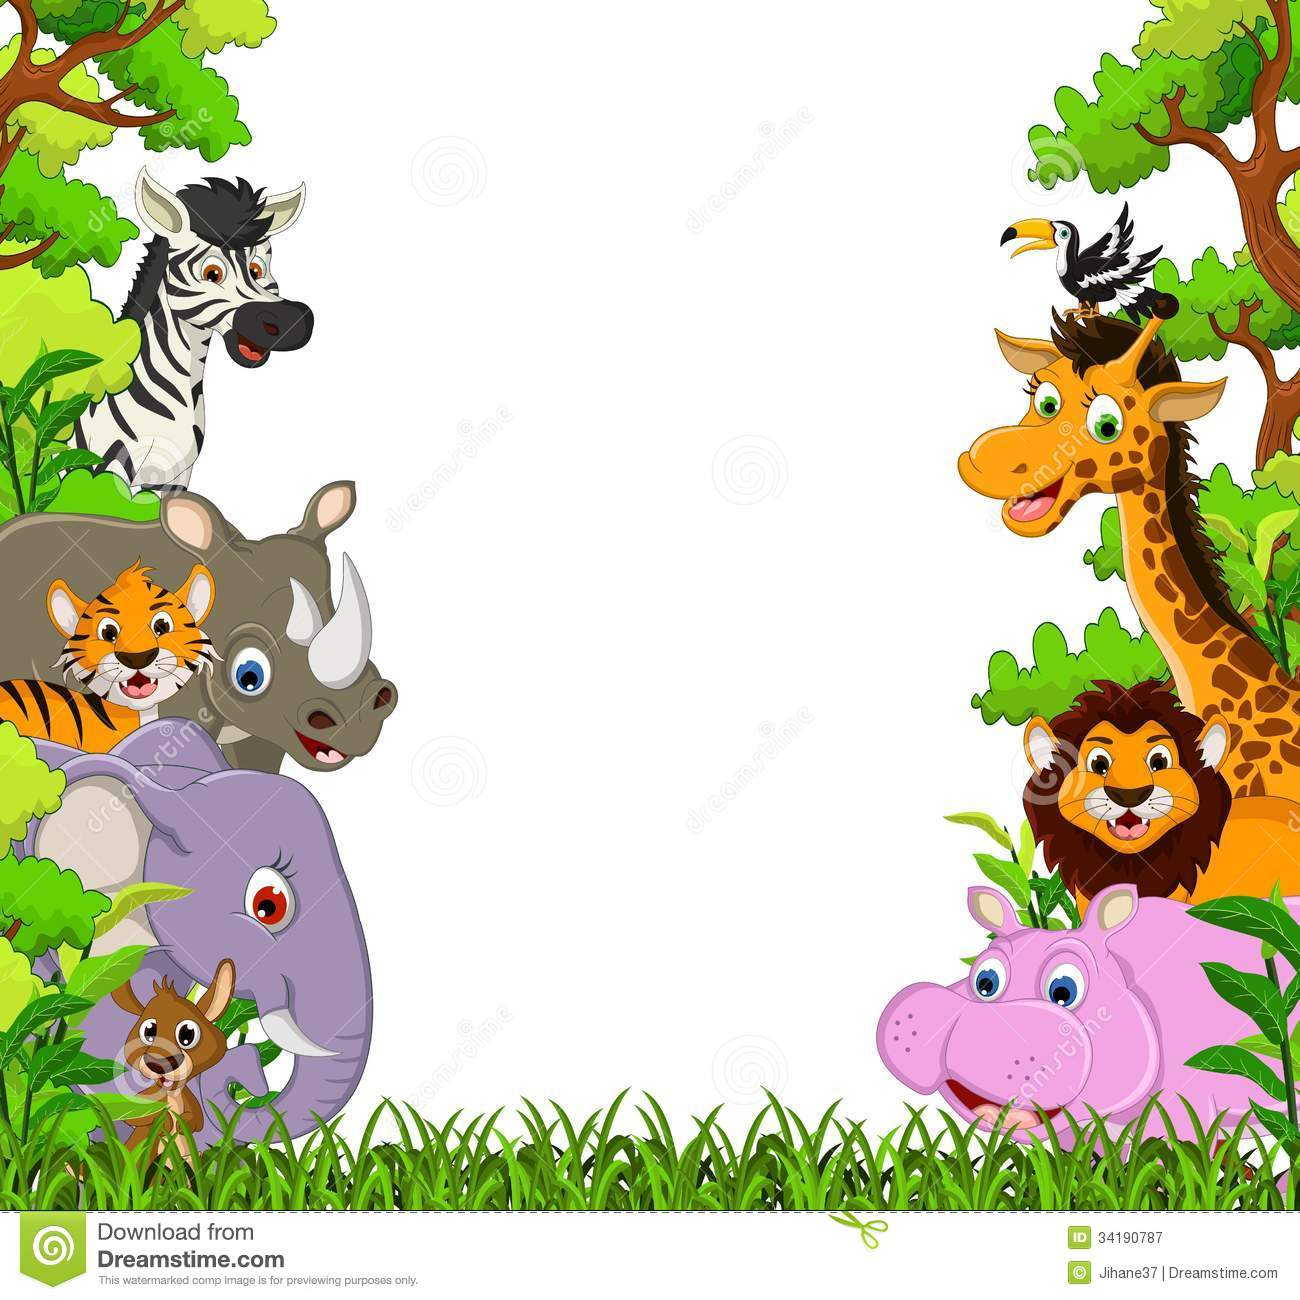 1300x1300 Jungle Clipart Wallpaper Pencil And In Color Animal Backgrounds